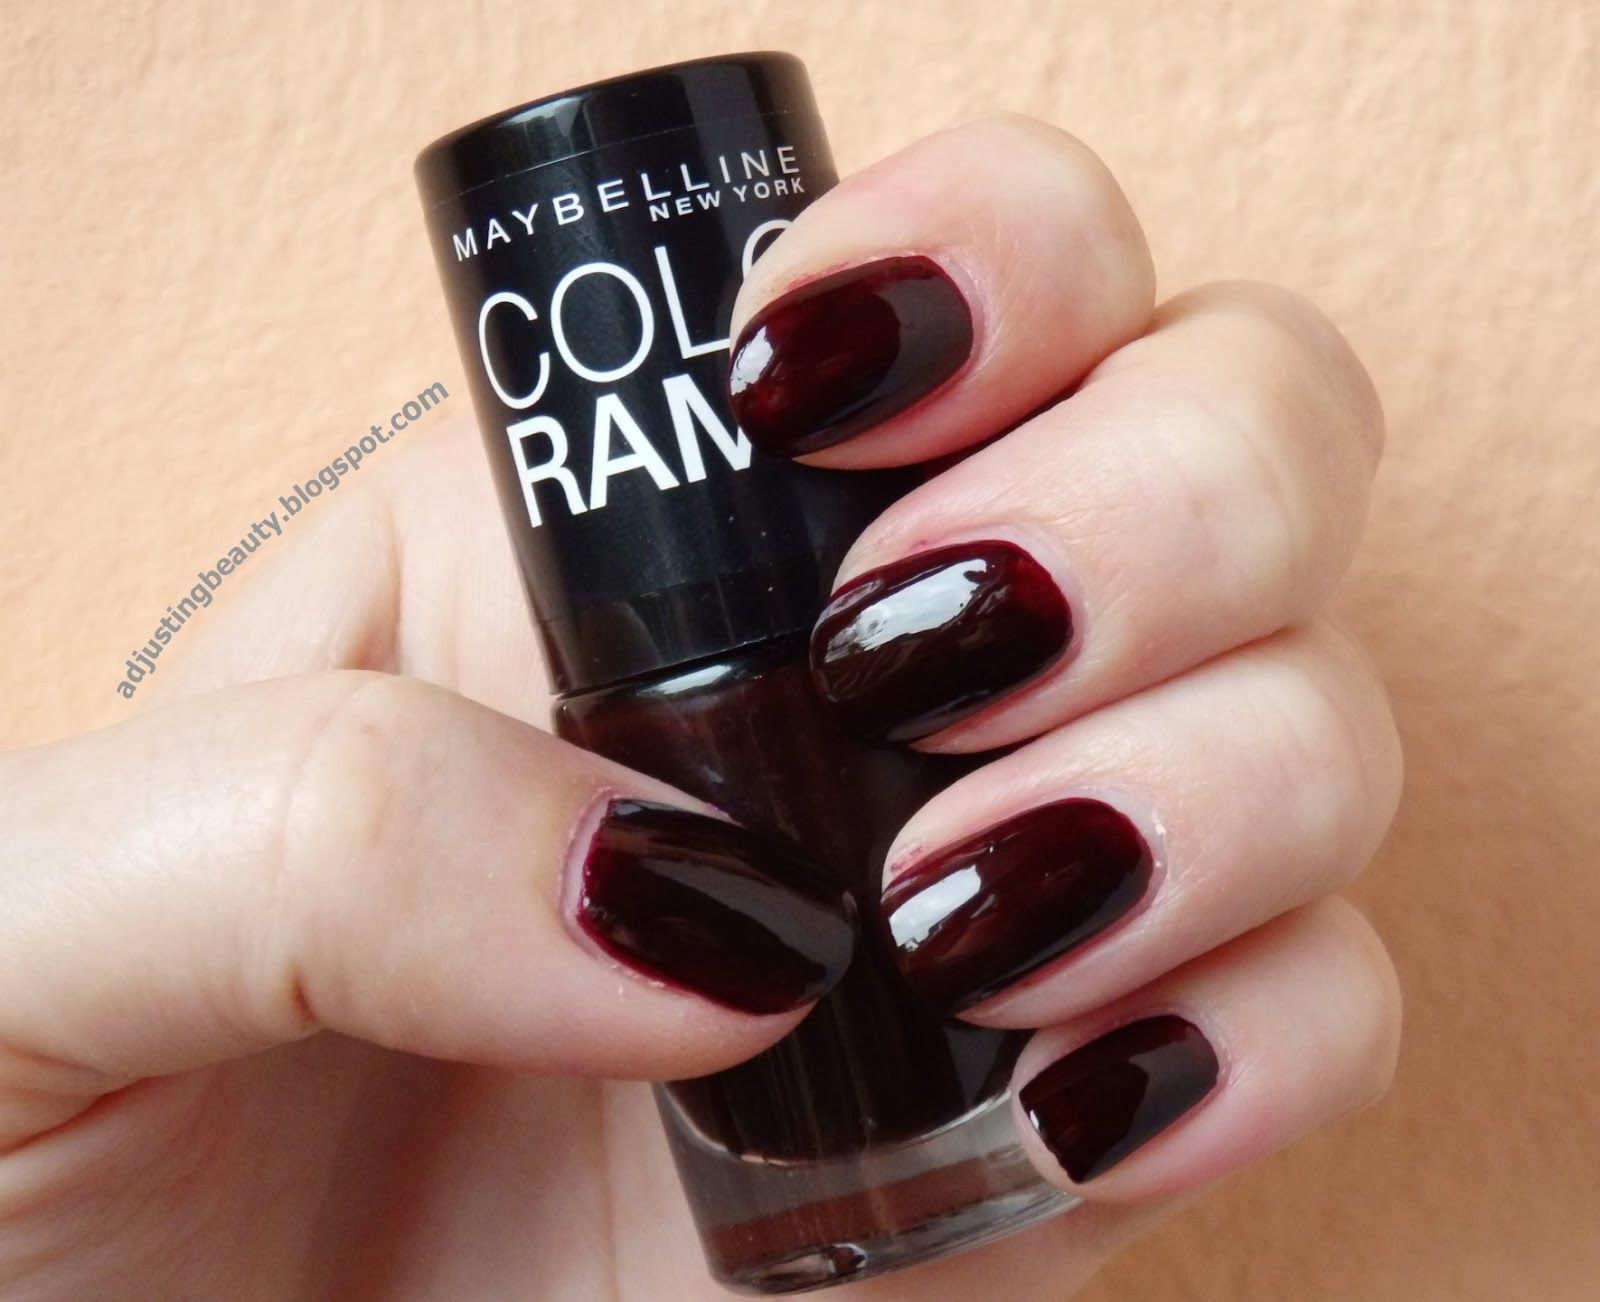 Review: Maybelline Colorama nail polish in 261 - Adjusting Beauty ...